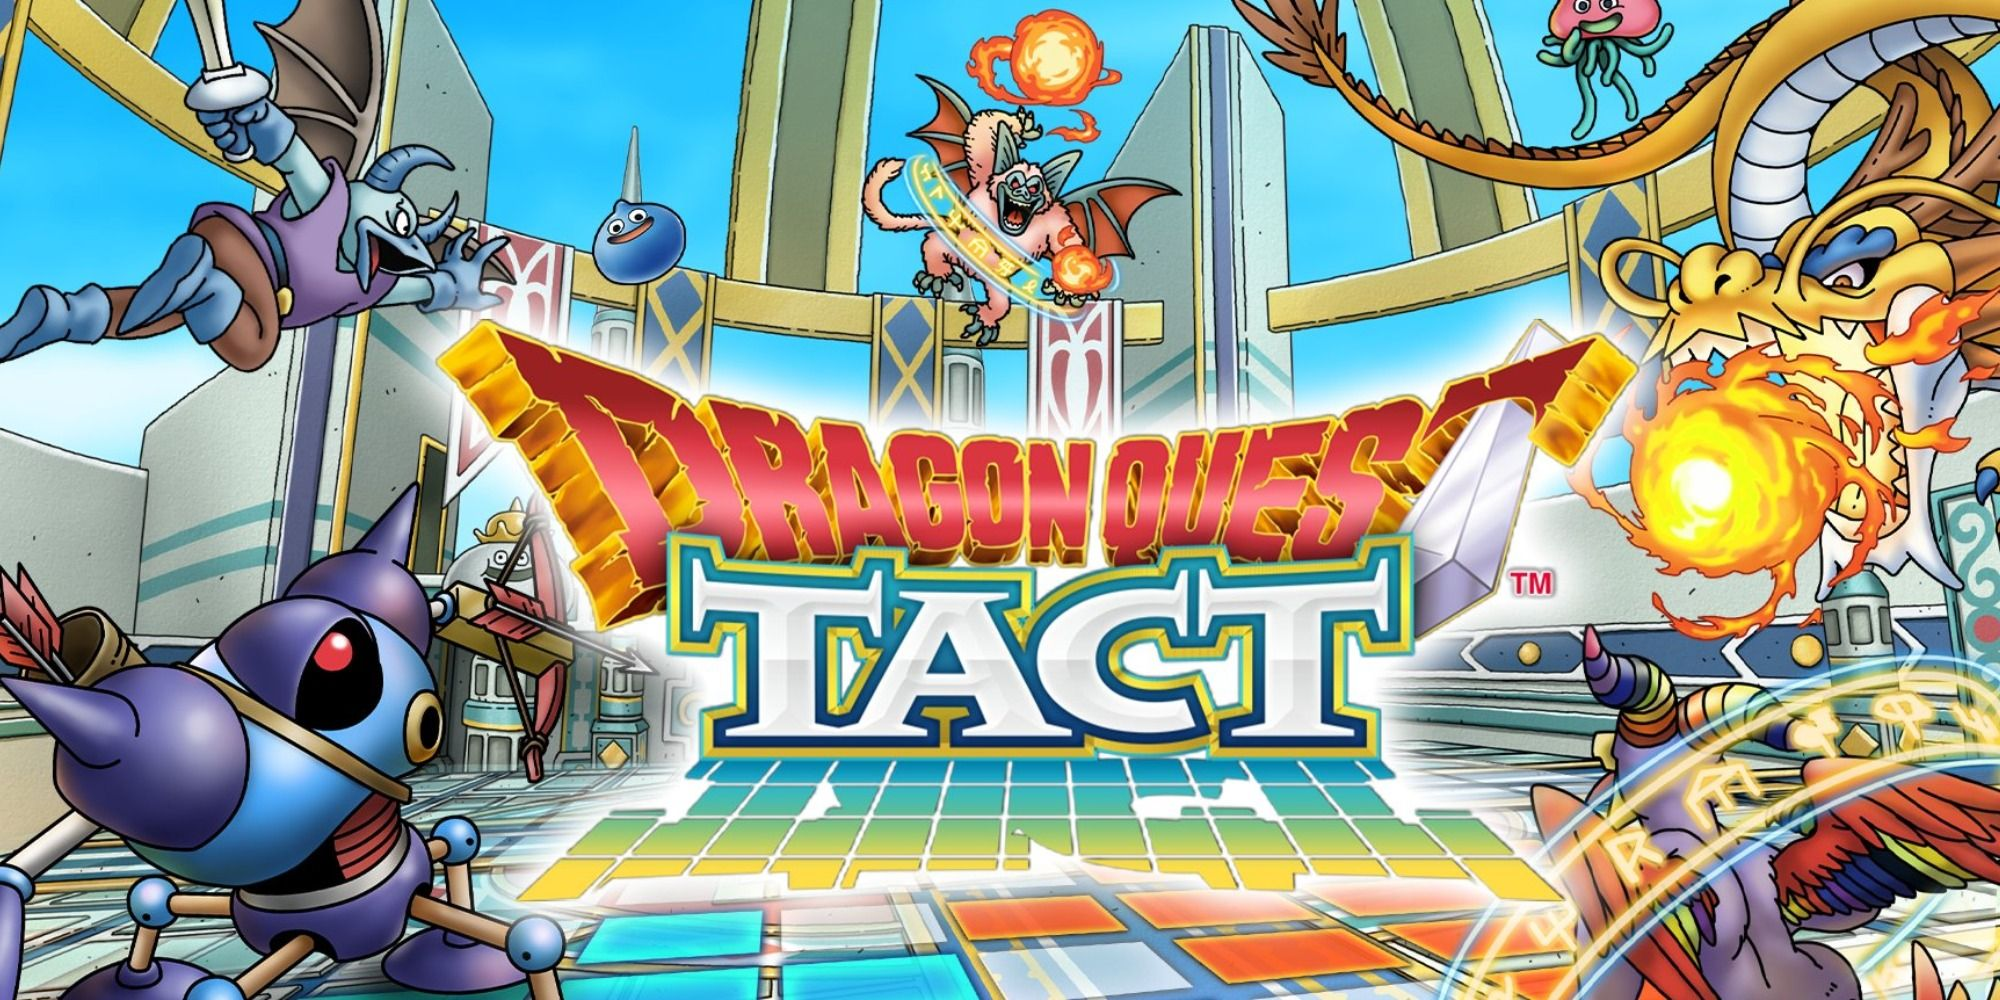 Dragon Quest Tact: Tips, Tricks & Strategies for New Players